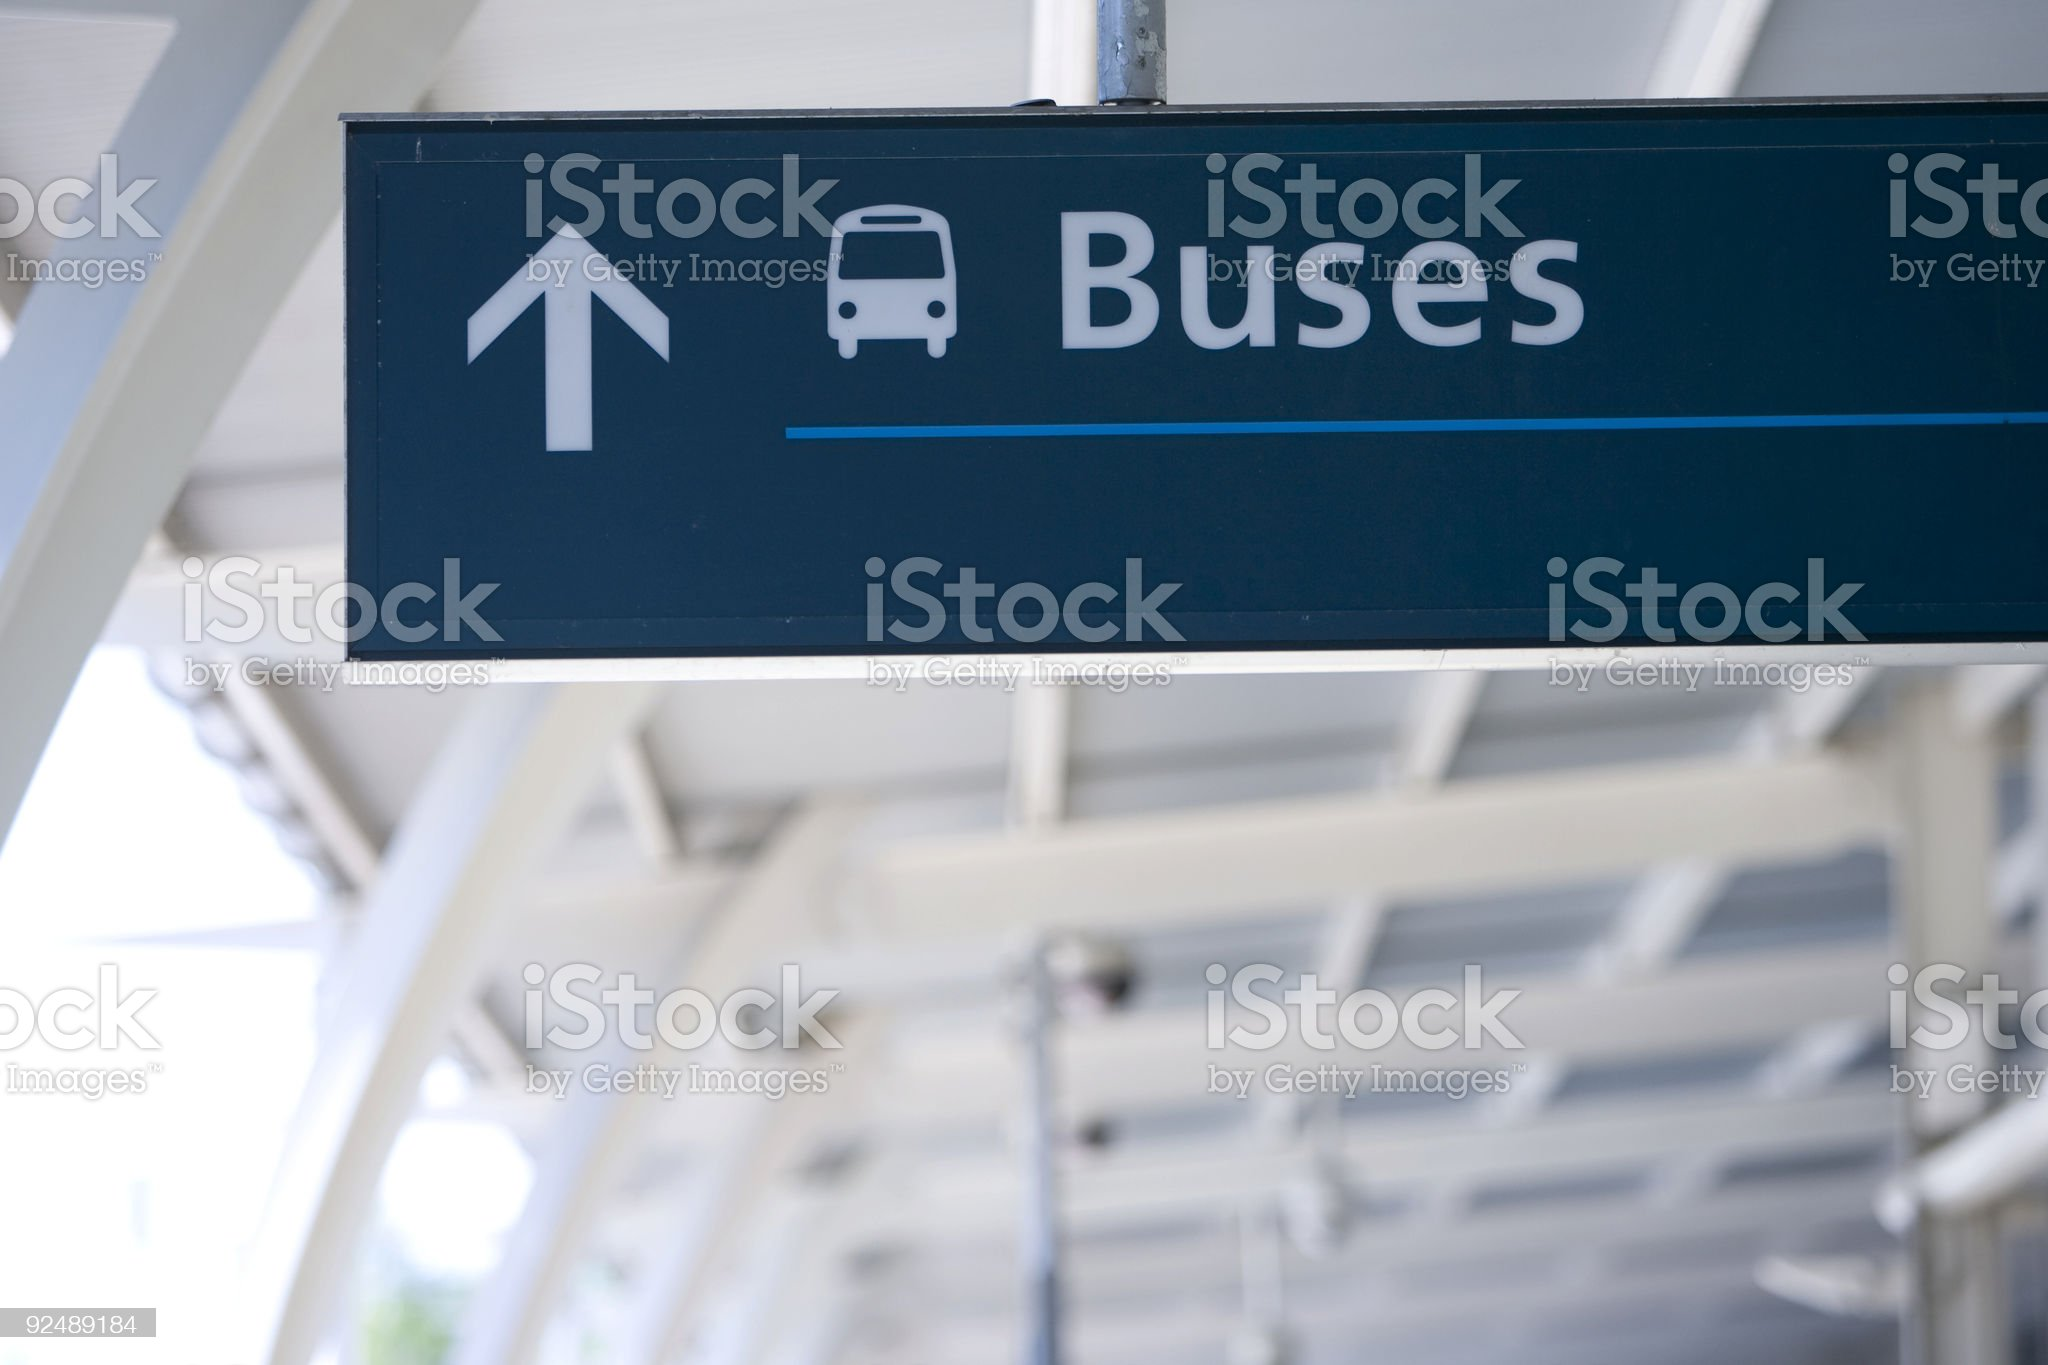 Buses sign at an airport with architecture in background royalty-free stock photo